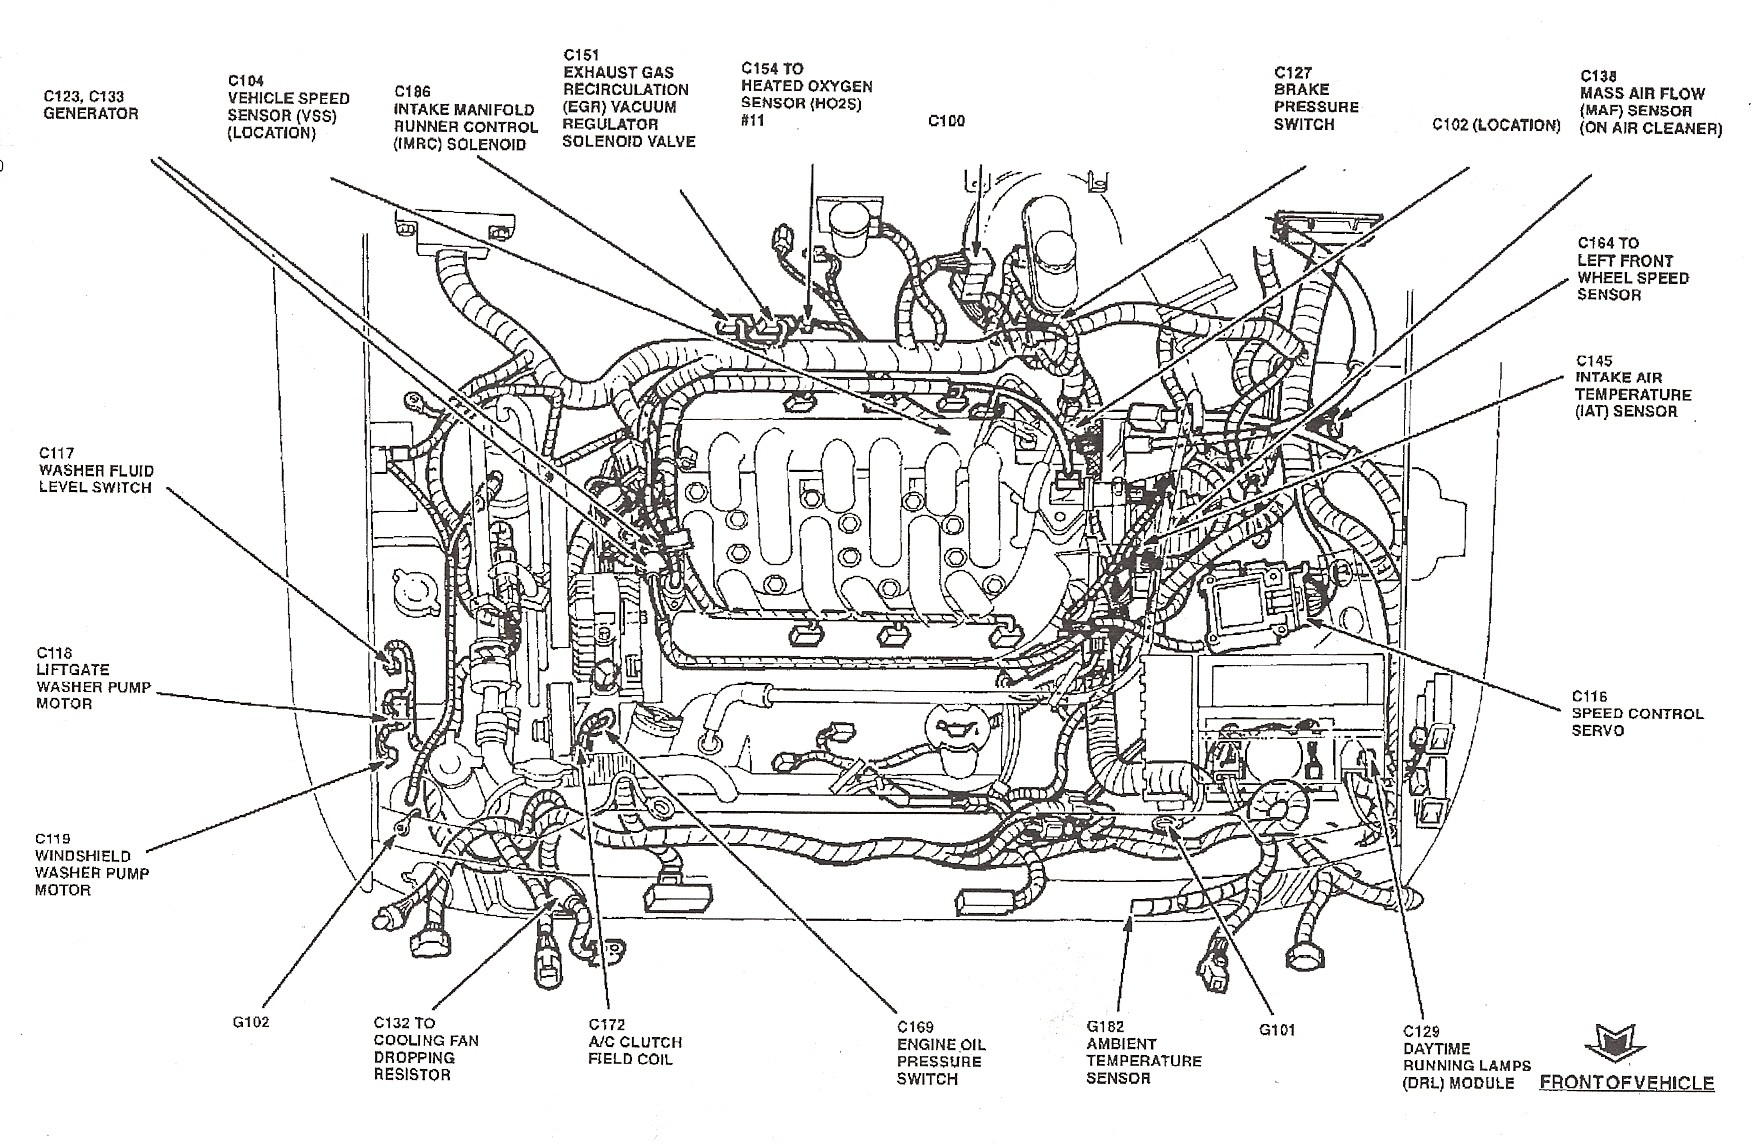 2002 ford explorer xlt engine diagram zetec engine diagram vacuum 2002 ford explorer xlt engine diagram zetec engine diagram vacuum wiring wiring diagrams instructions of 2002 publicscrutiny Image collections